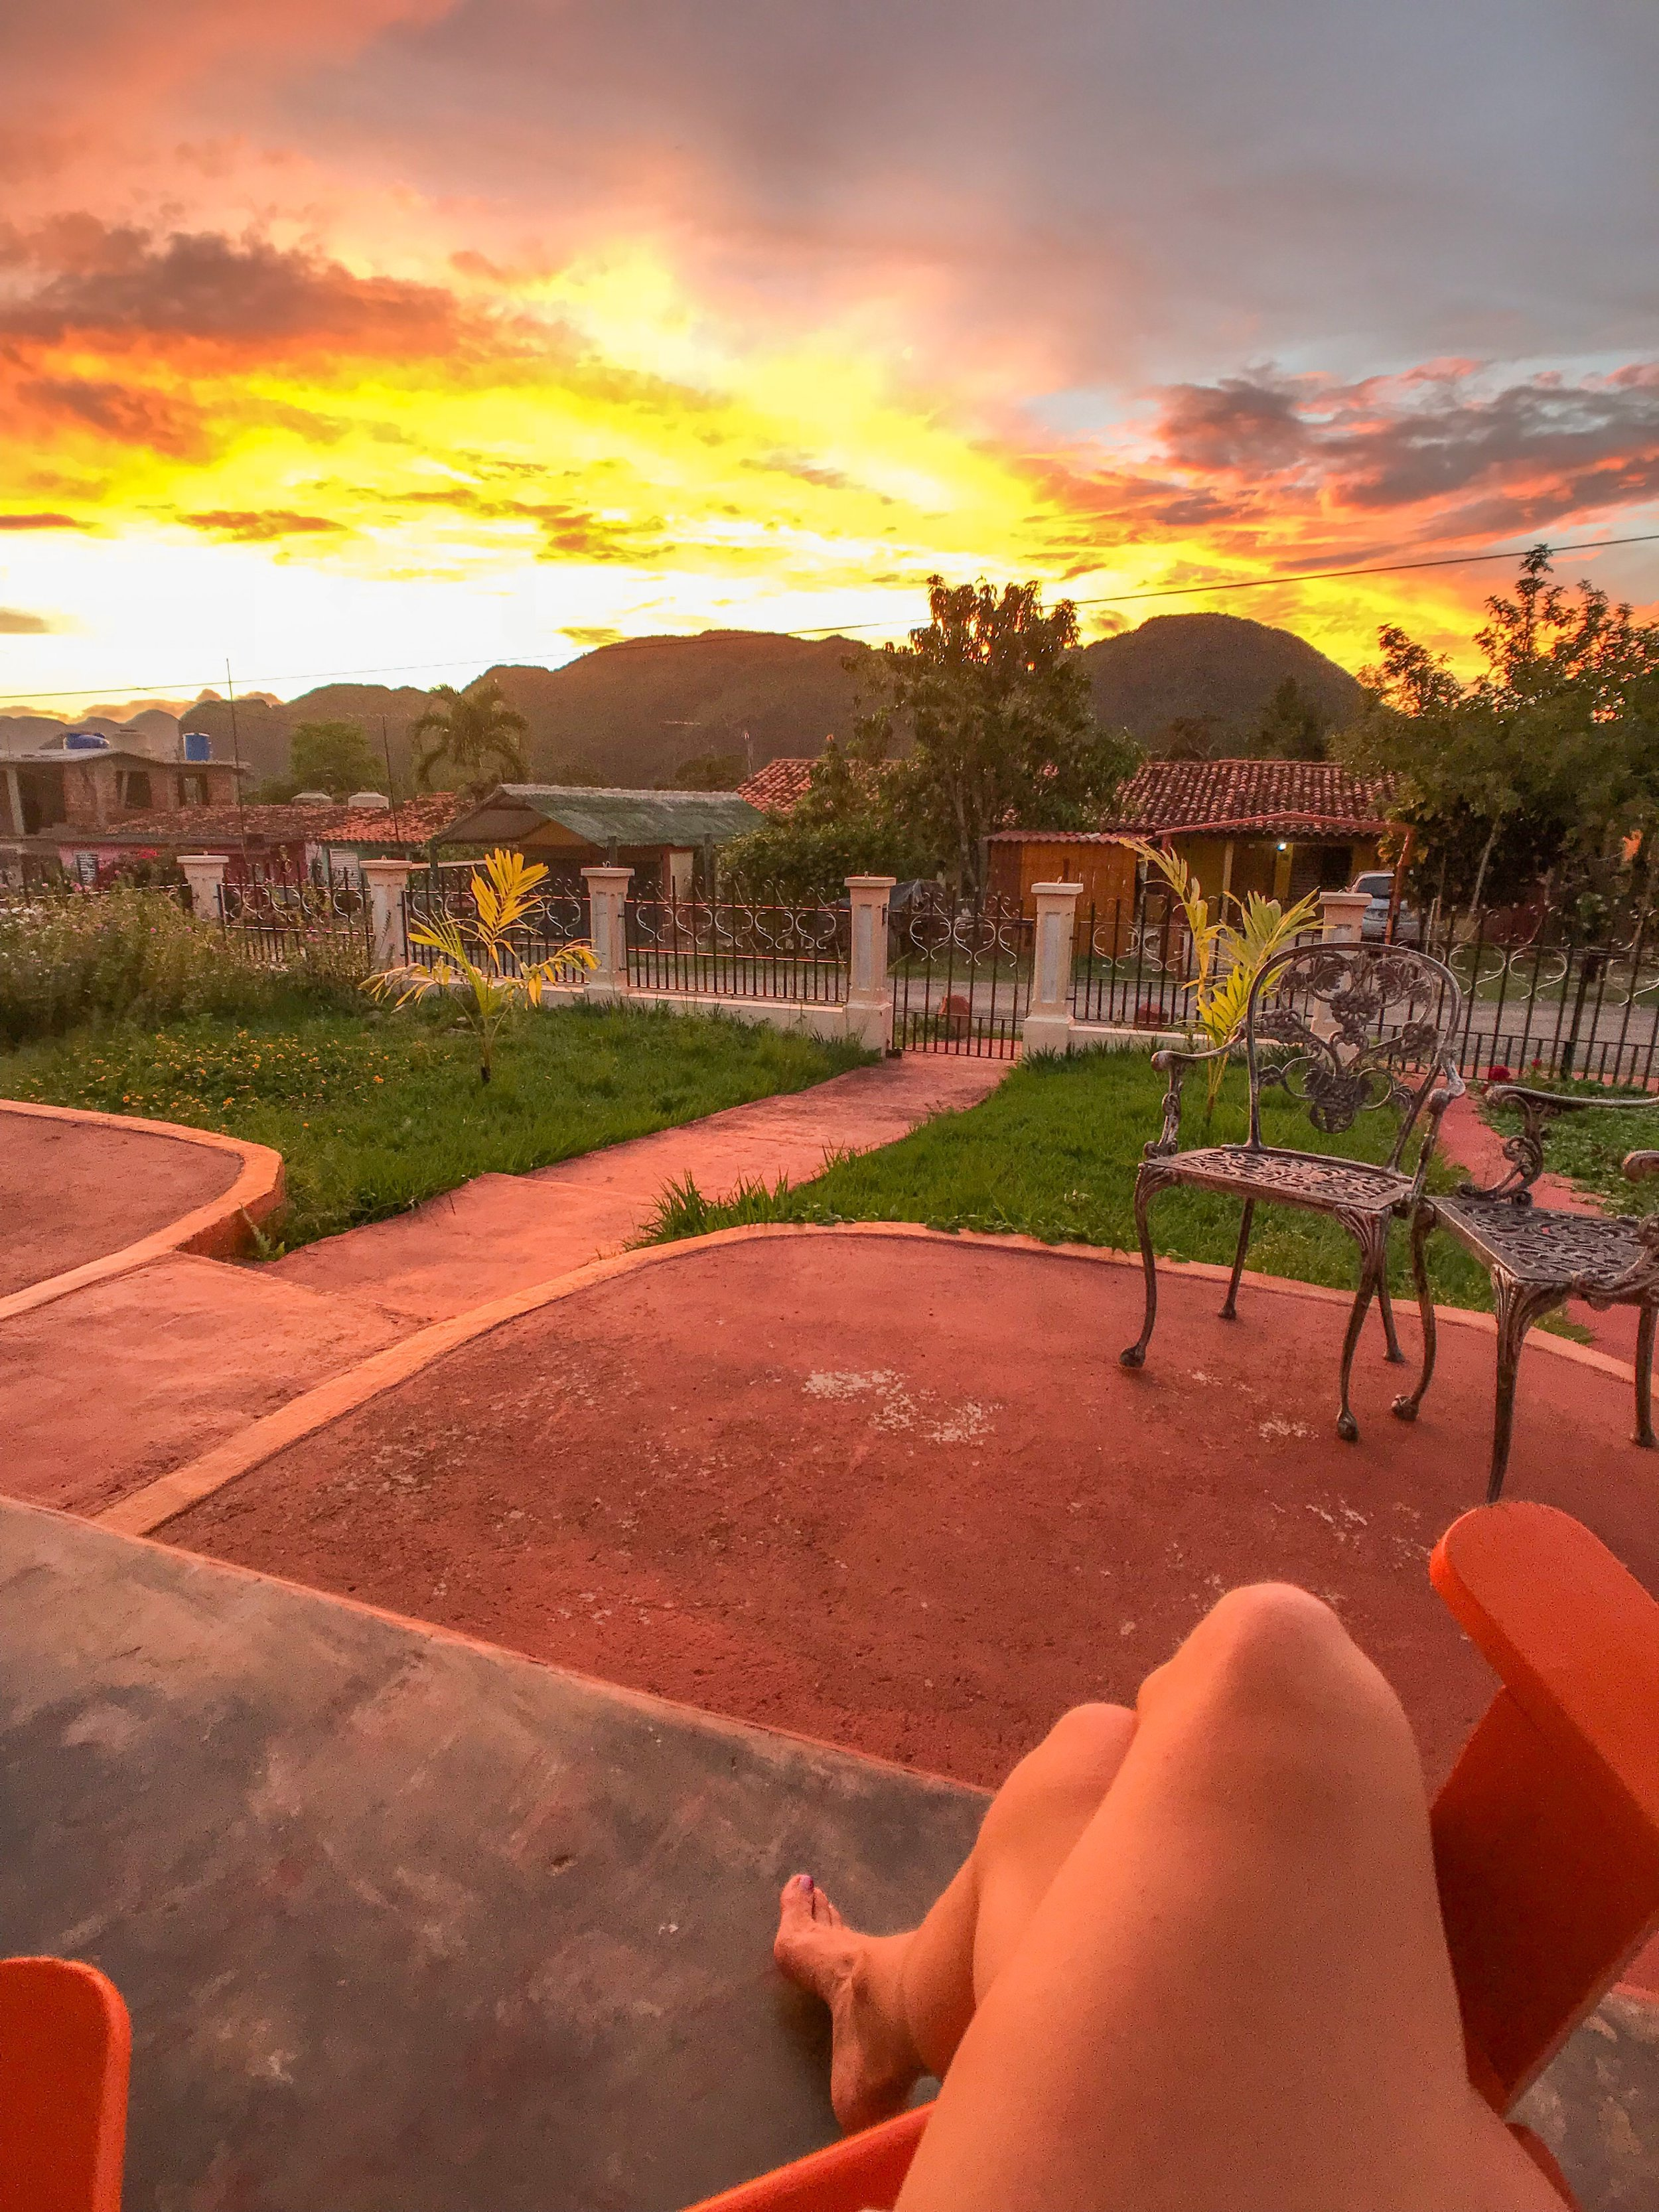 Sunset at a casa I work with in Vinales